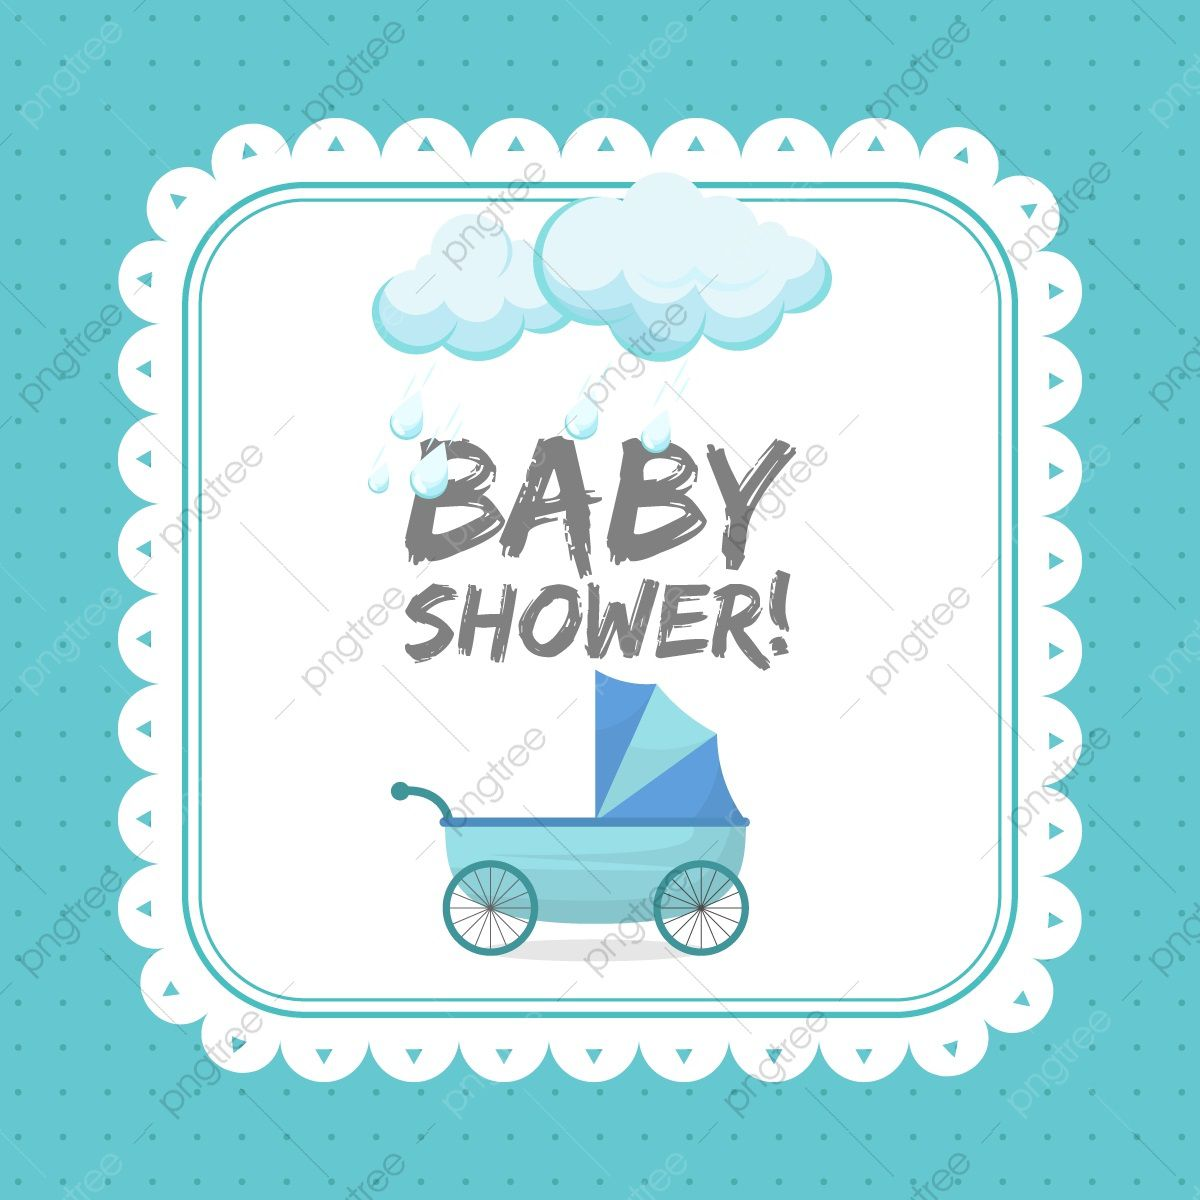 009 Top Baby Shower Invitation Card Template Free Download Example  IndianFull